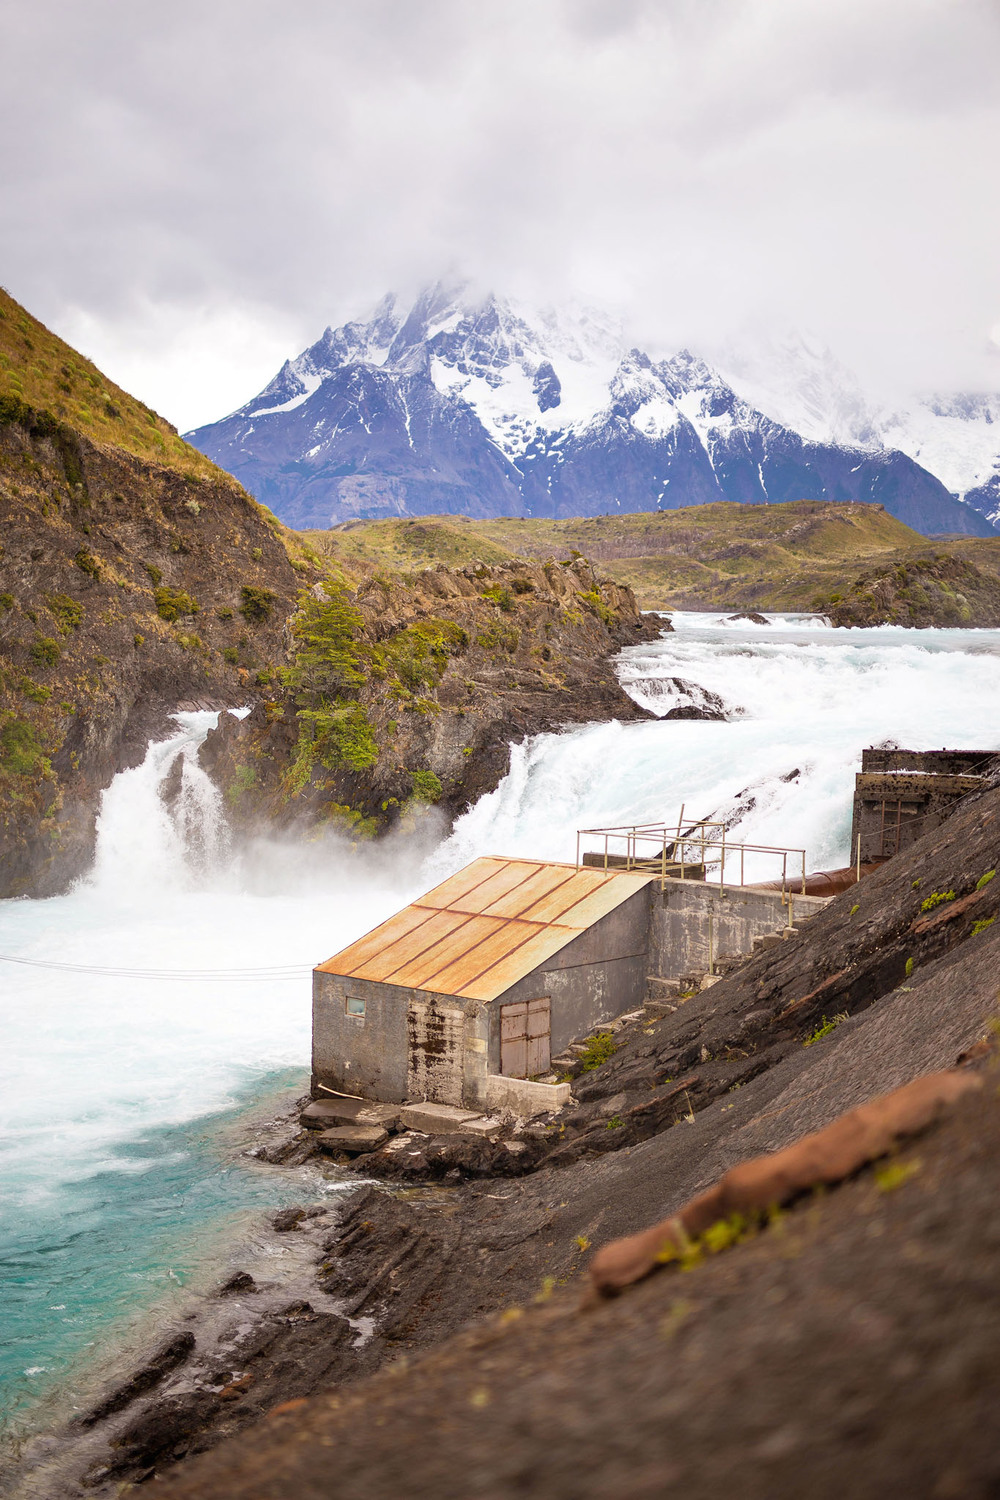 Wedding-Travellers-Overlanding-Destination-Wedding-Chile-Torres-del-Paine-ugly-building-salto-chico-small-waterfall